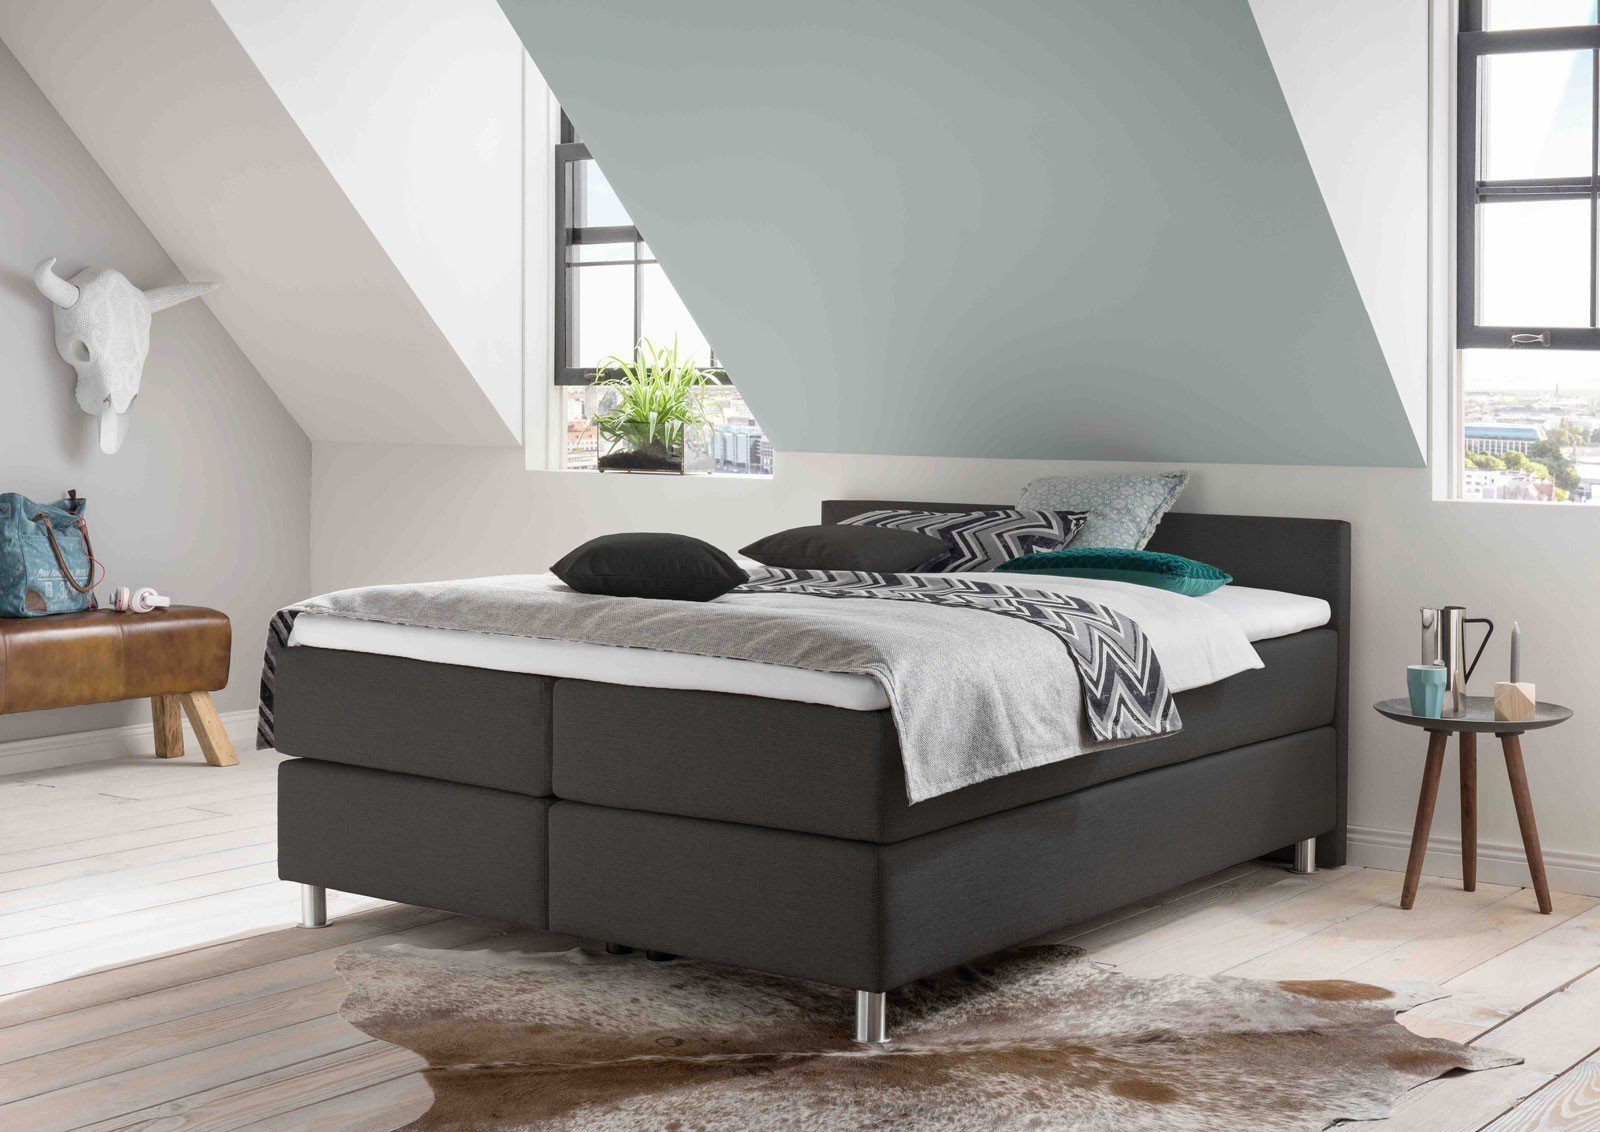 otten boxspringbett princesa in grau mit extra kurzem kopfteil m bel letz ihr online shop. Black Bedroom Furniture Sets. Home Design Ideas